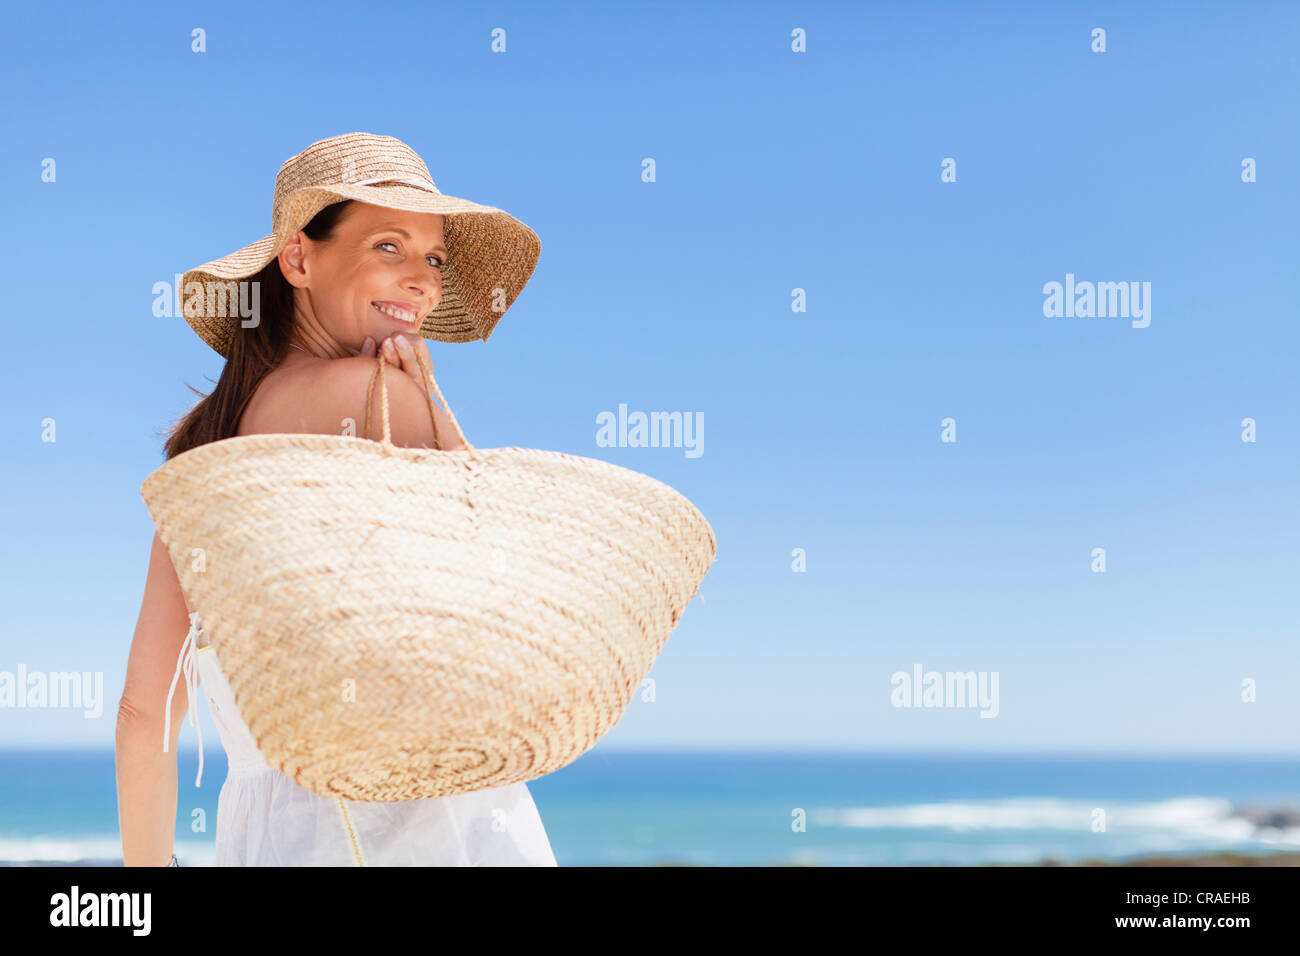 Woman carrying straw bag outdoors - Stock Image